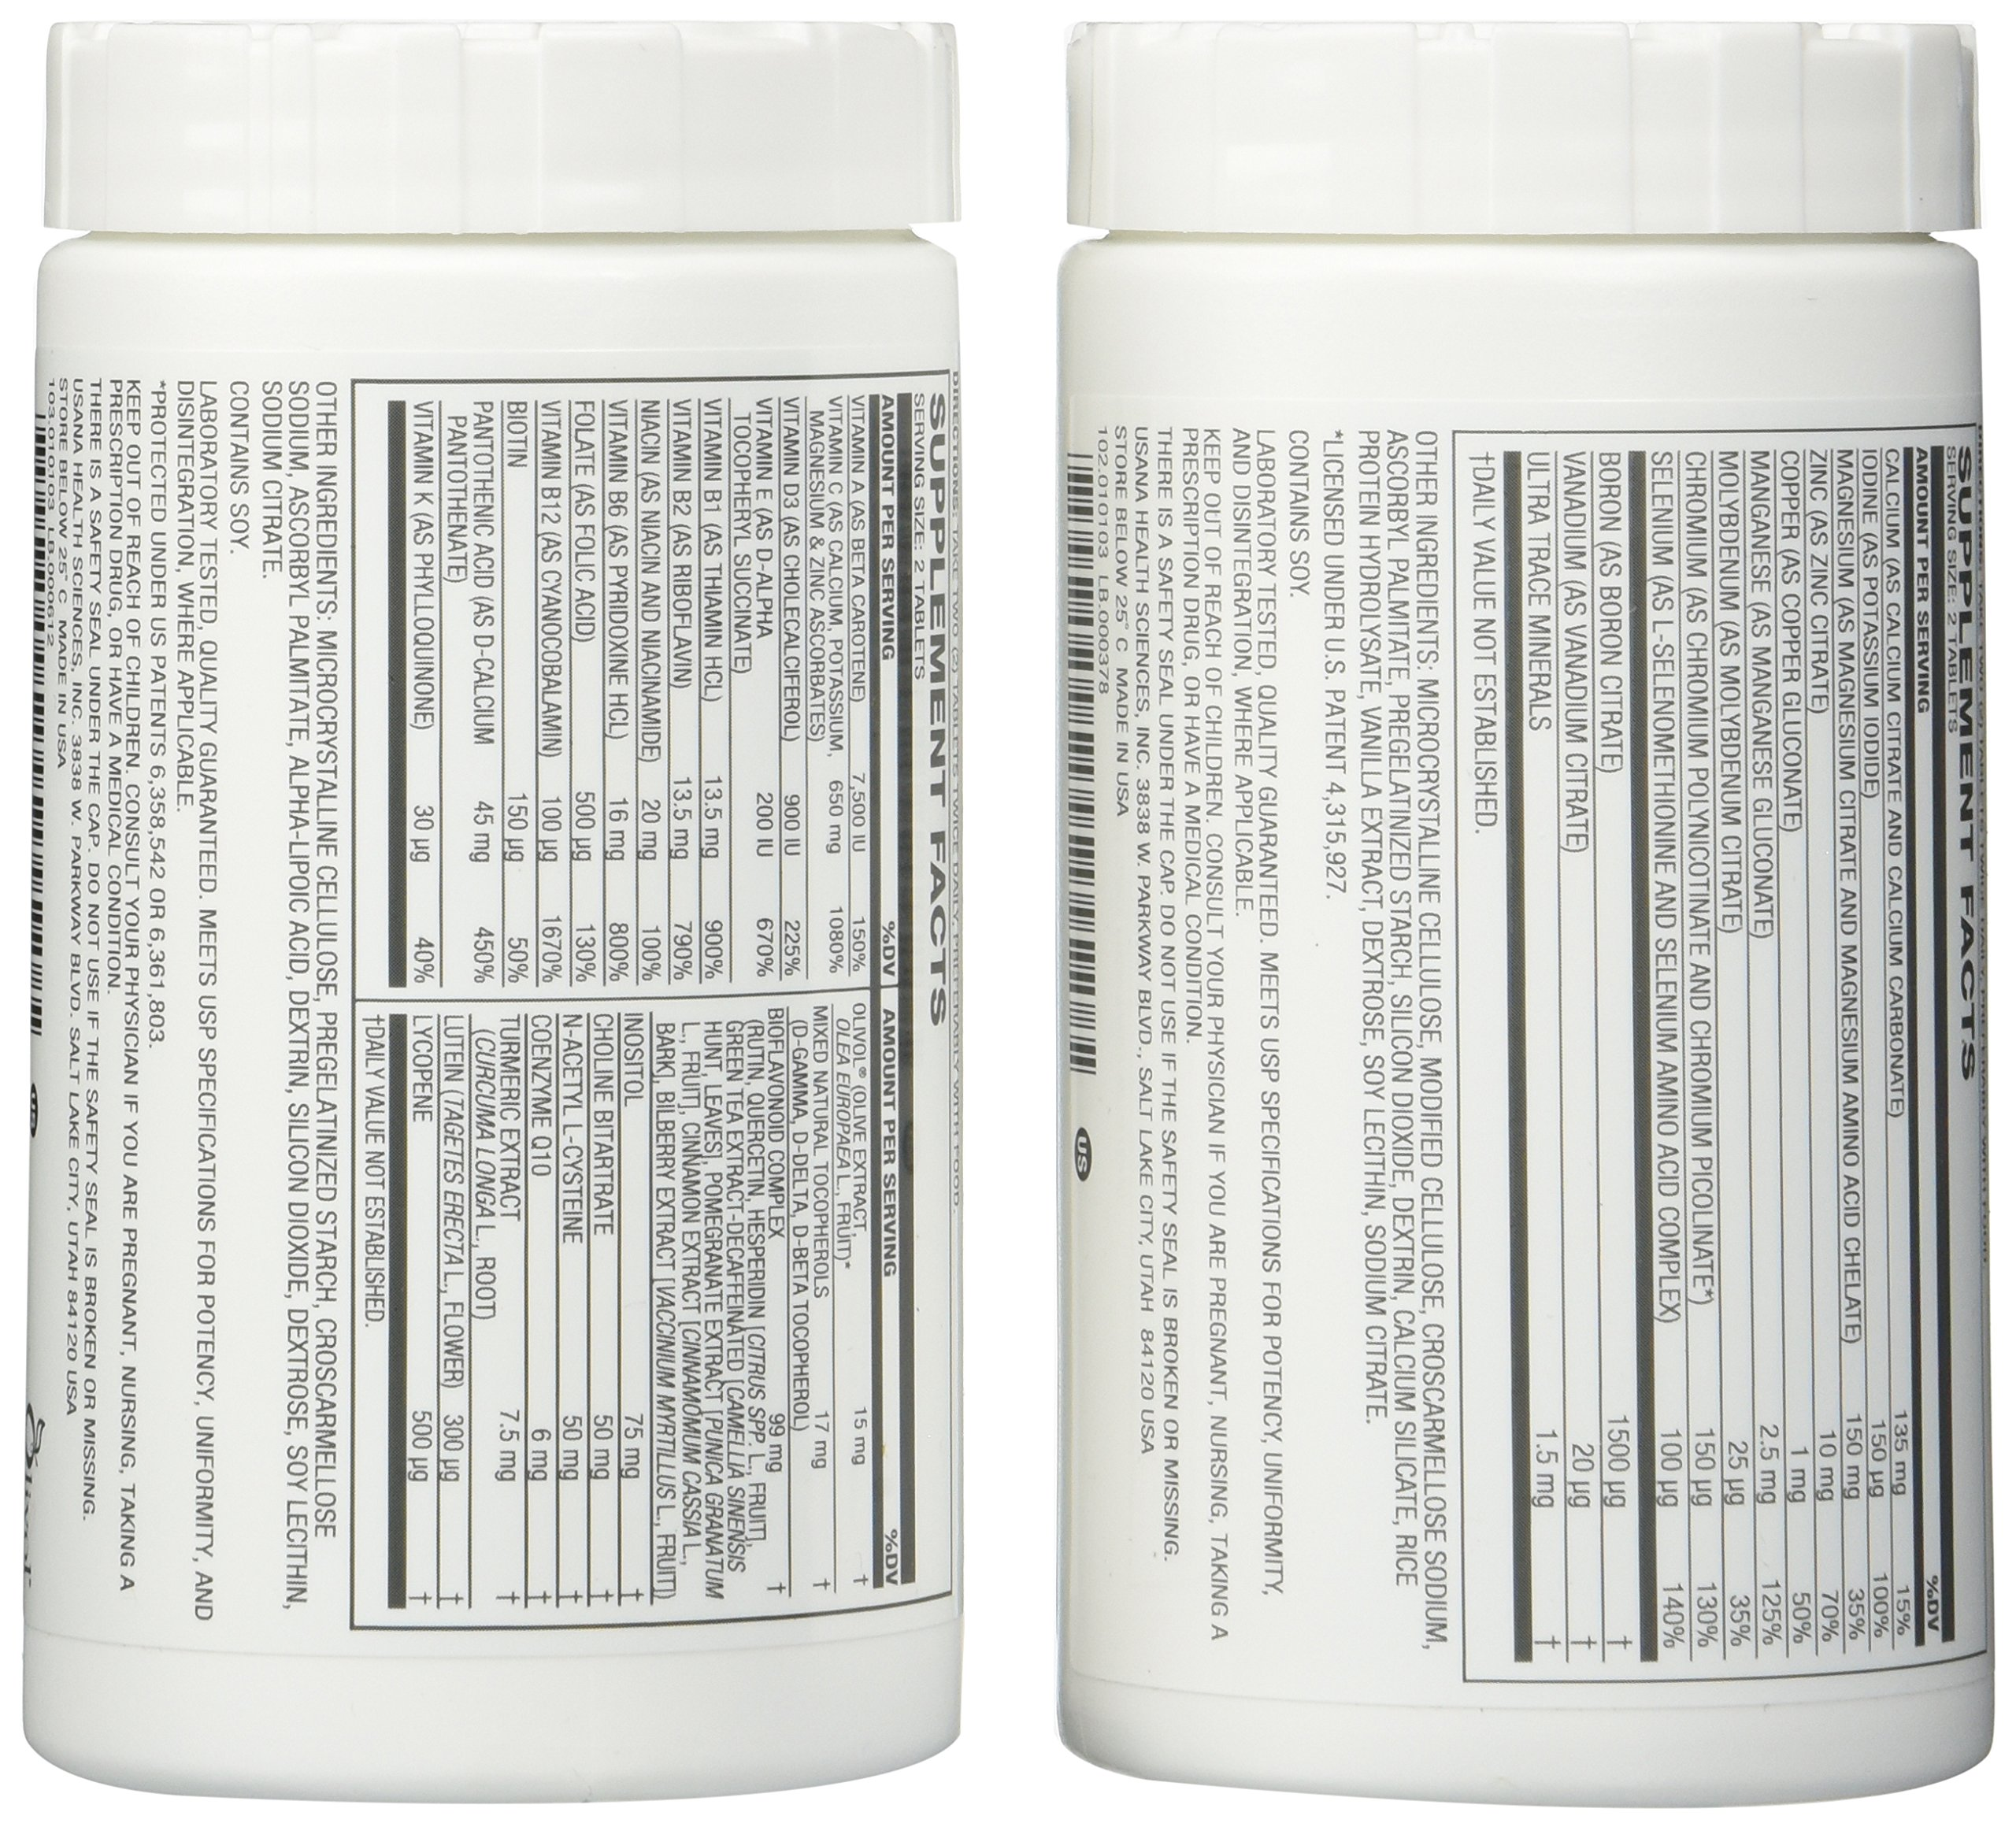 USANA triple action cellular nutrition system: Core Minerals and Vita Antioxidant 112 tablets/ each bottle by USANA